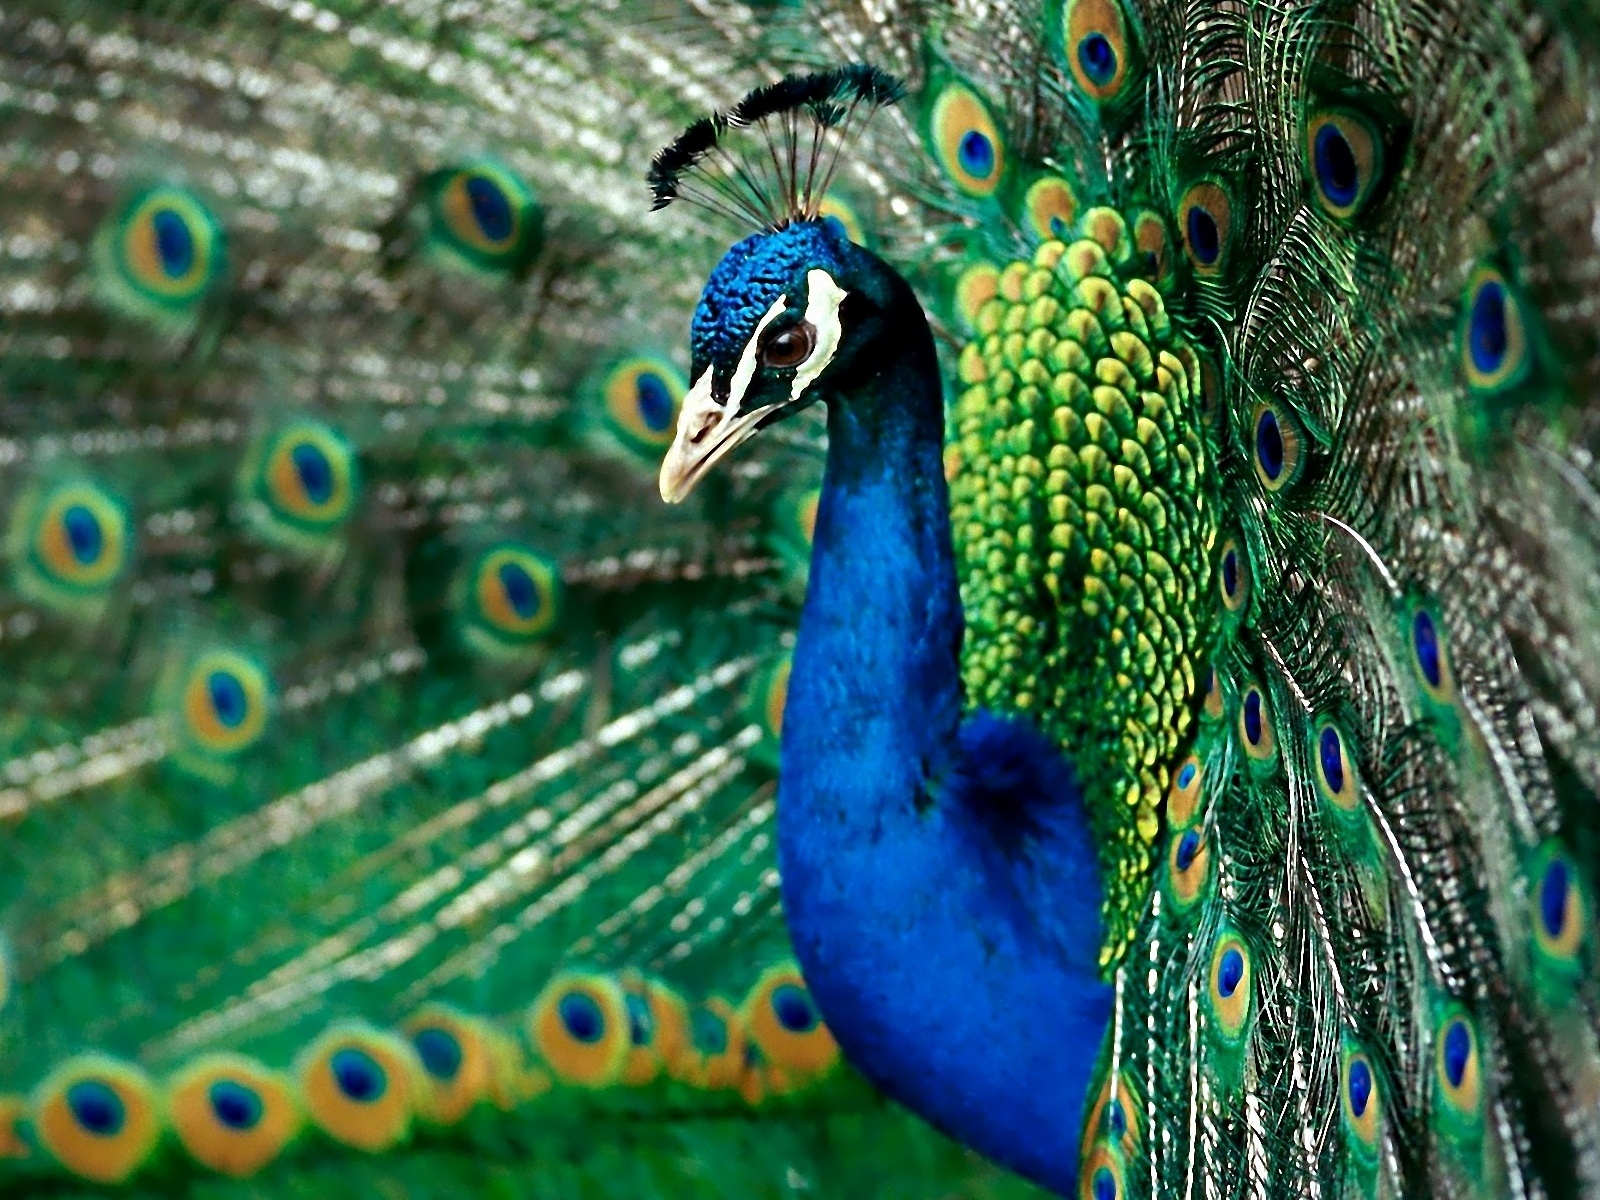 Description: The Wallpaper above is Splendid peacock Wallpaper in Resolution 1600x1200. Choose your Resolution and Download Splendid peacock Wallpaper